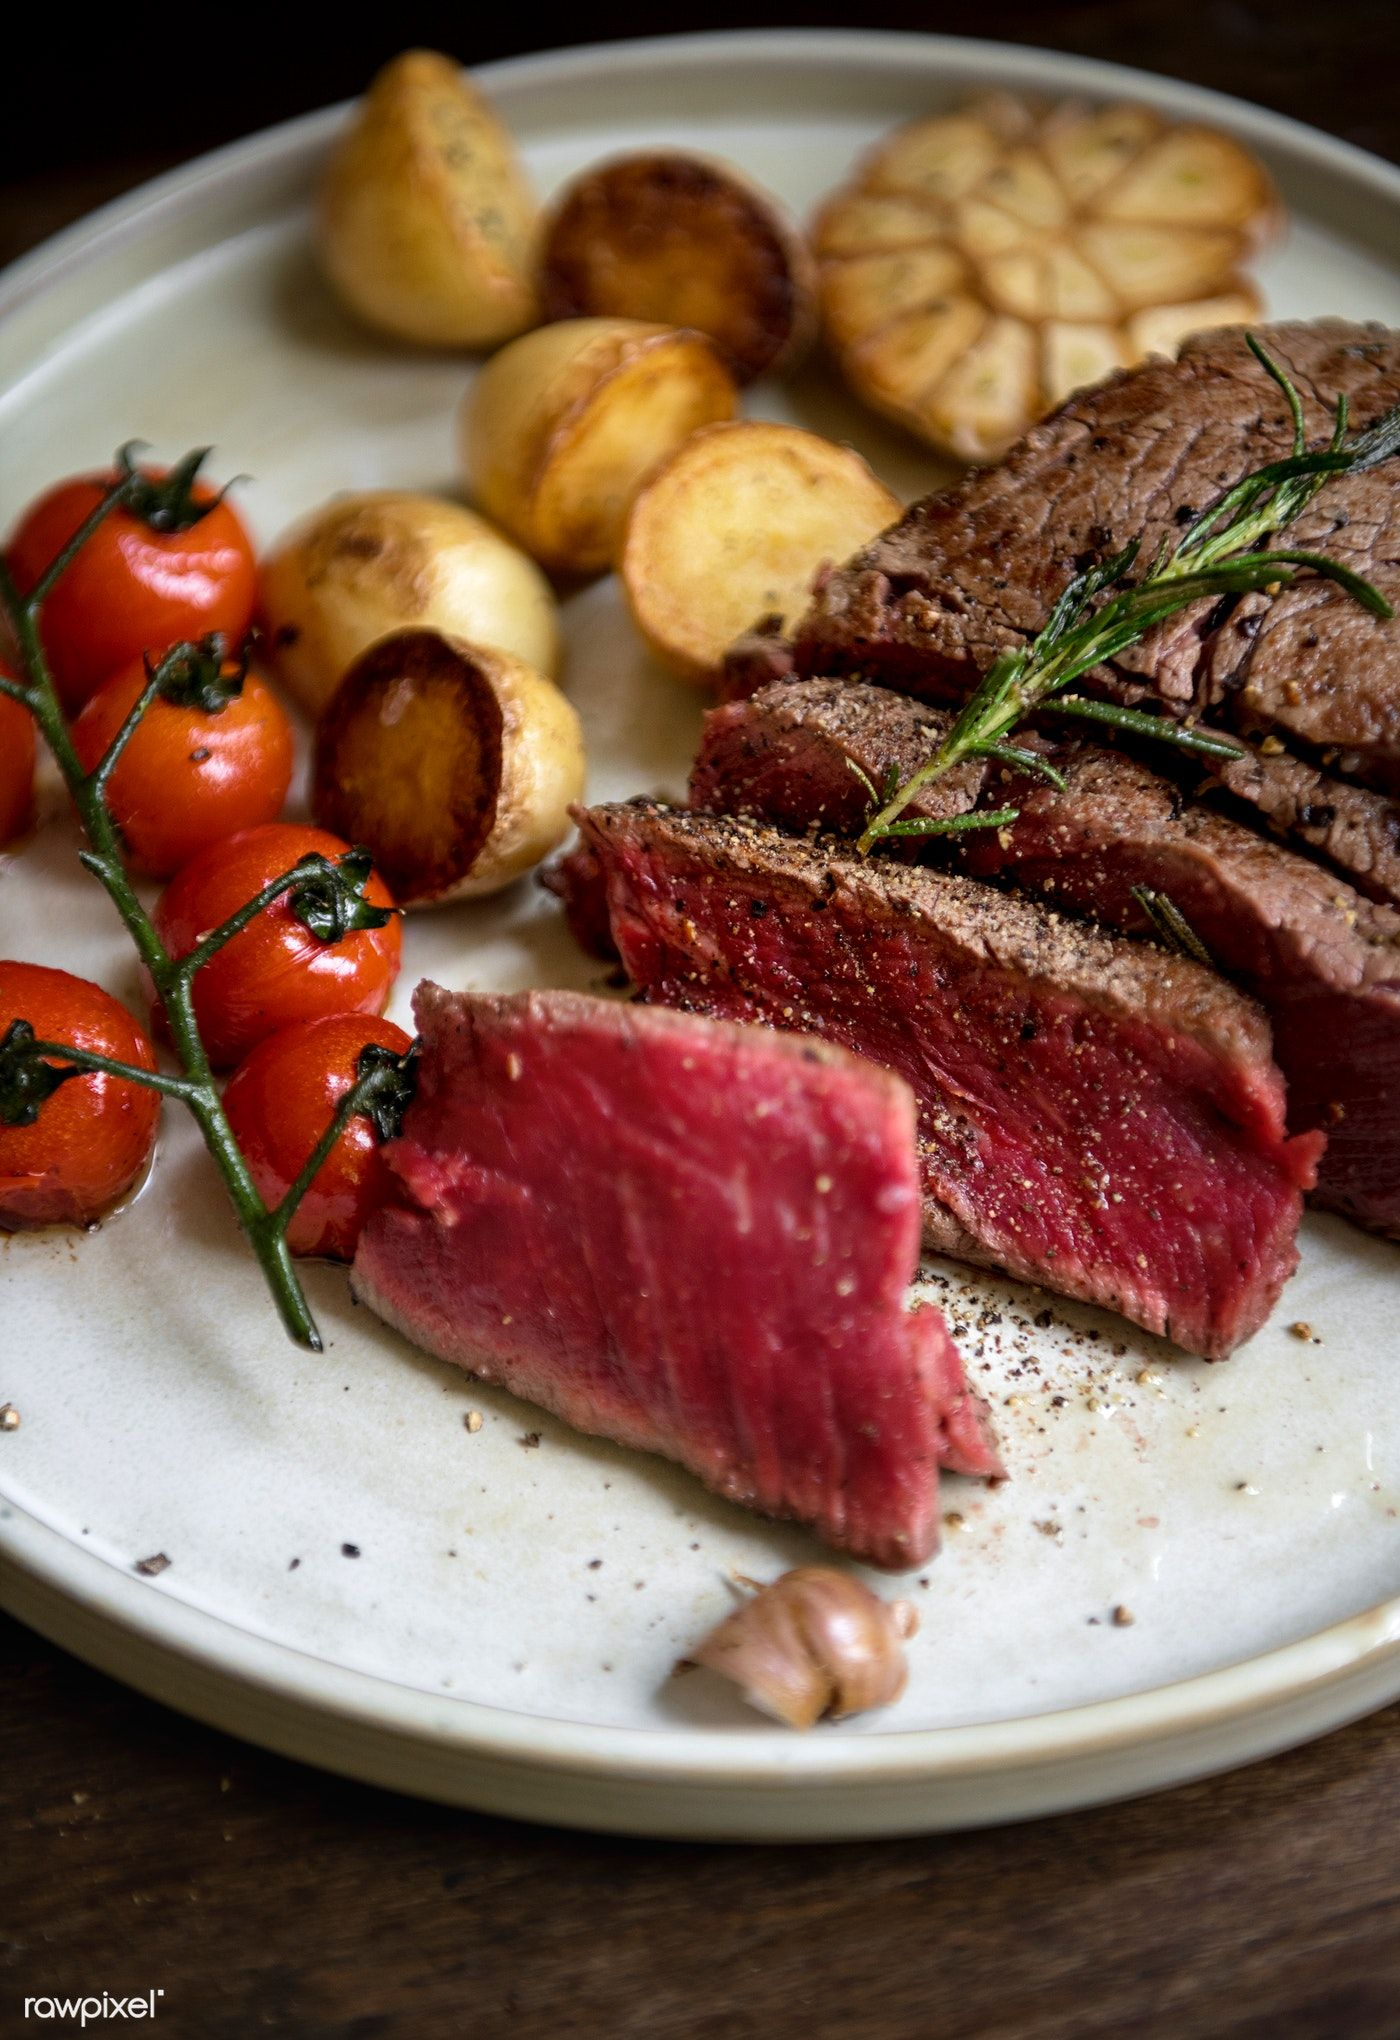 Download Premium Image Of Rare Fillet Of Steak Food Photography Recipe Food Food Photography Recipes